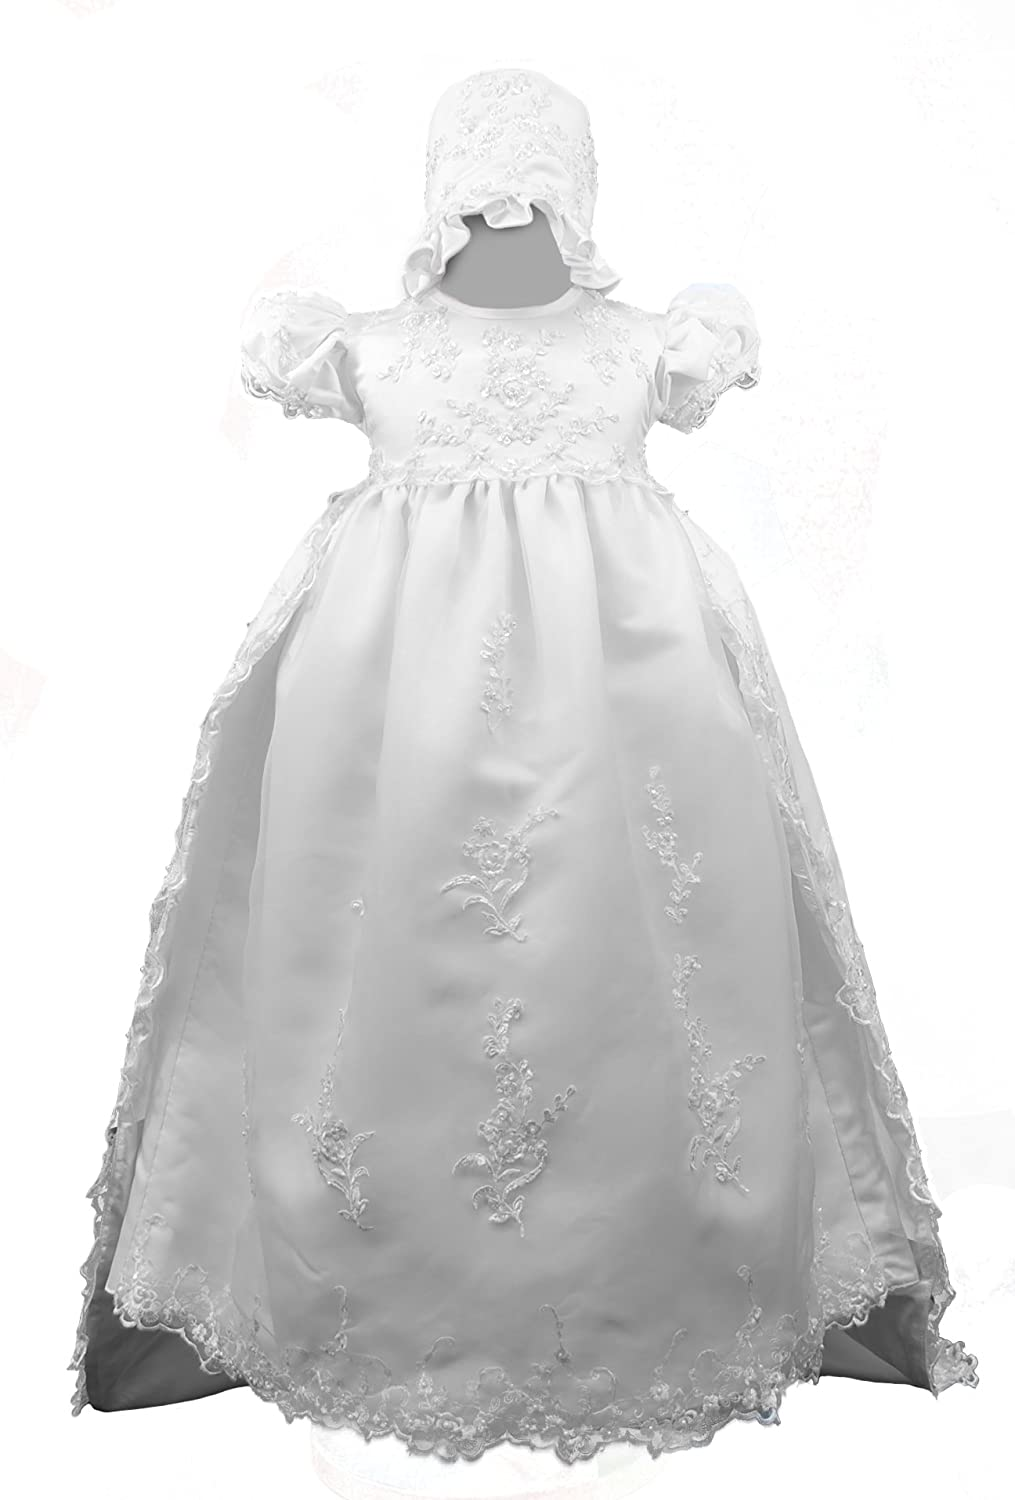 New Infant Girl /& Toddler Christening Baptism Formal Dress size New Born to 30 M